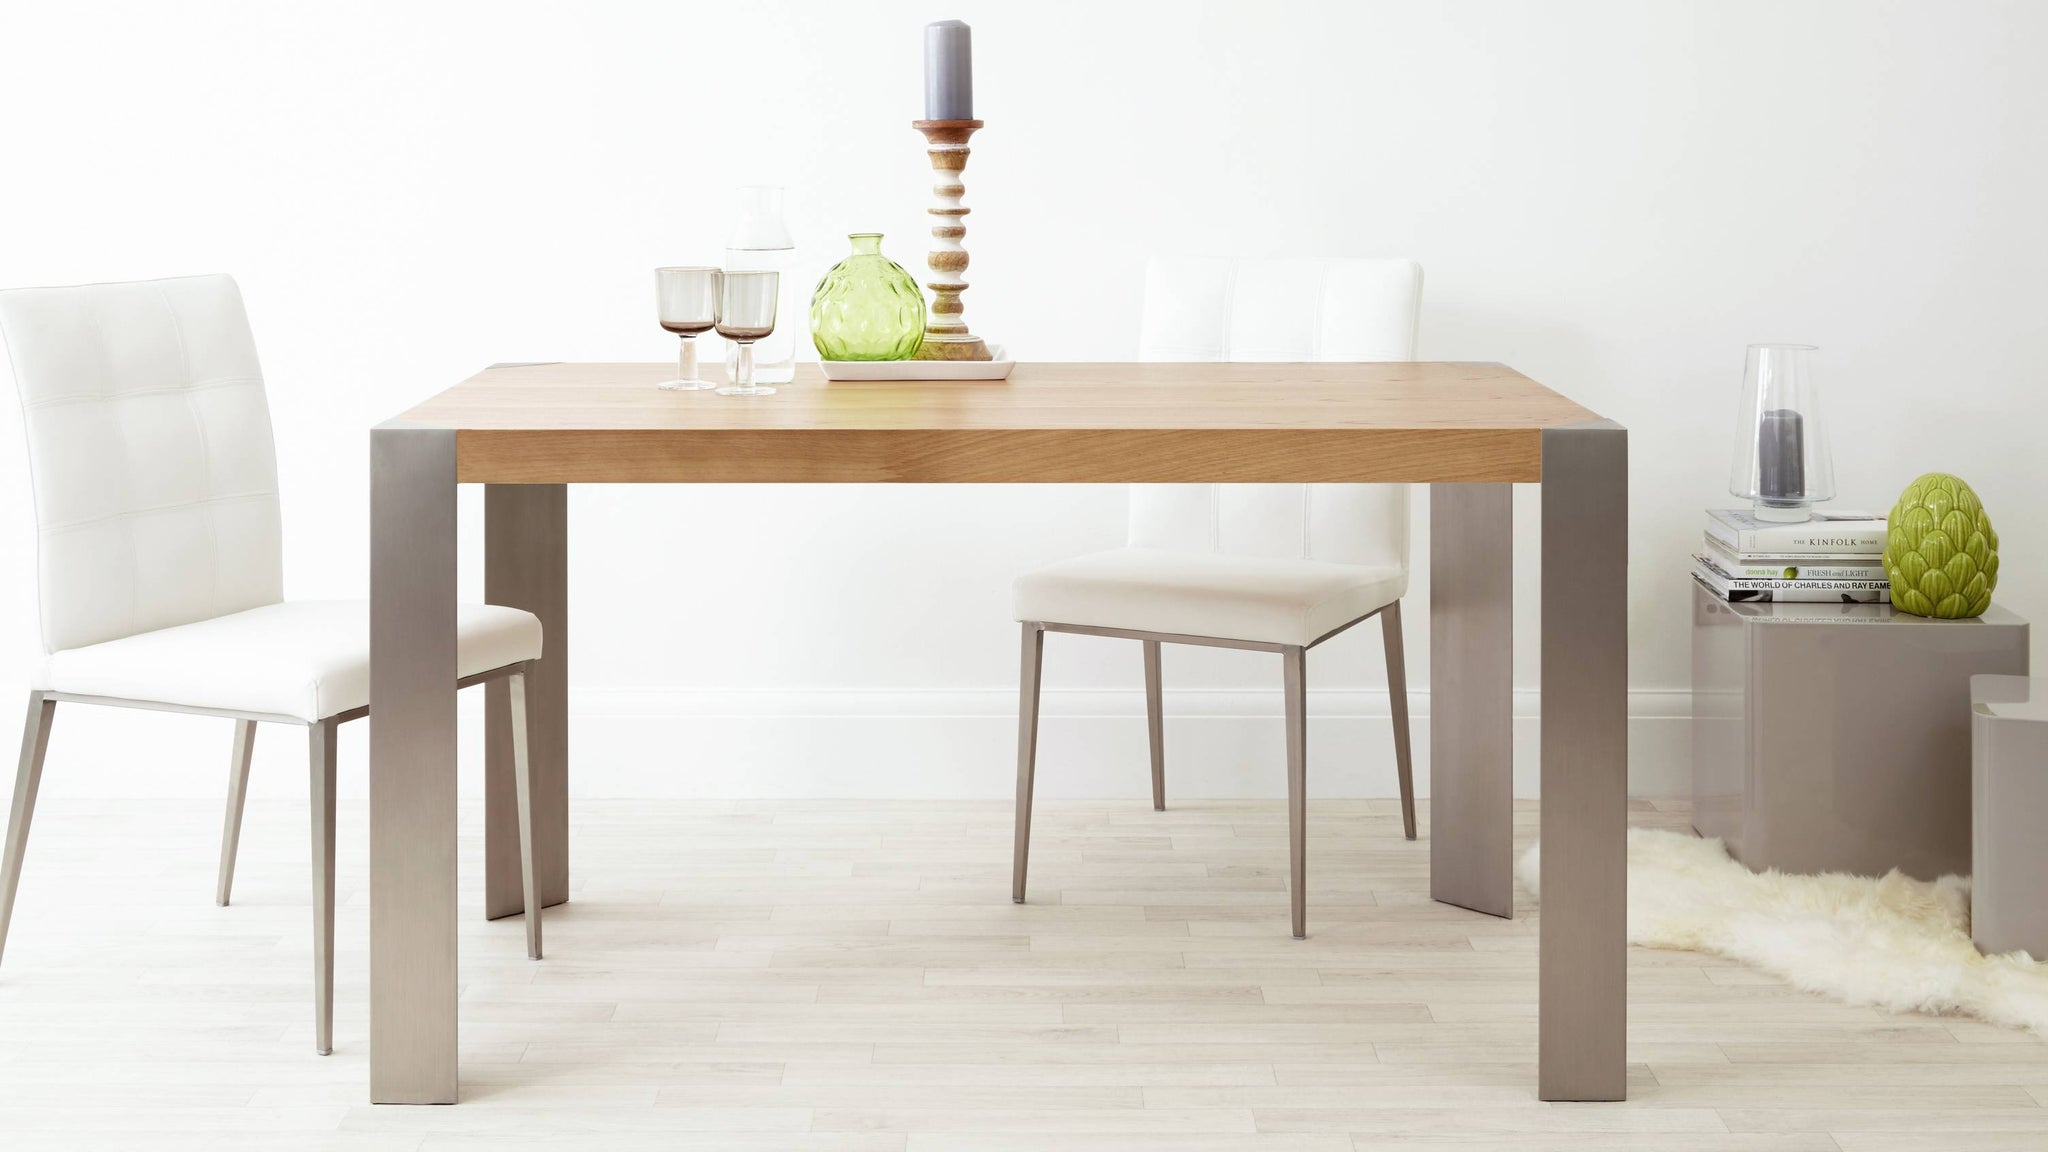 Wooden and Brushed Metal Dining Table